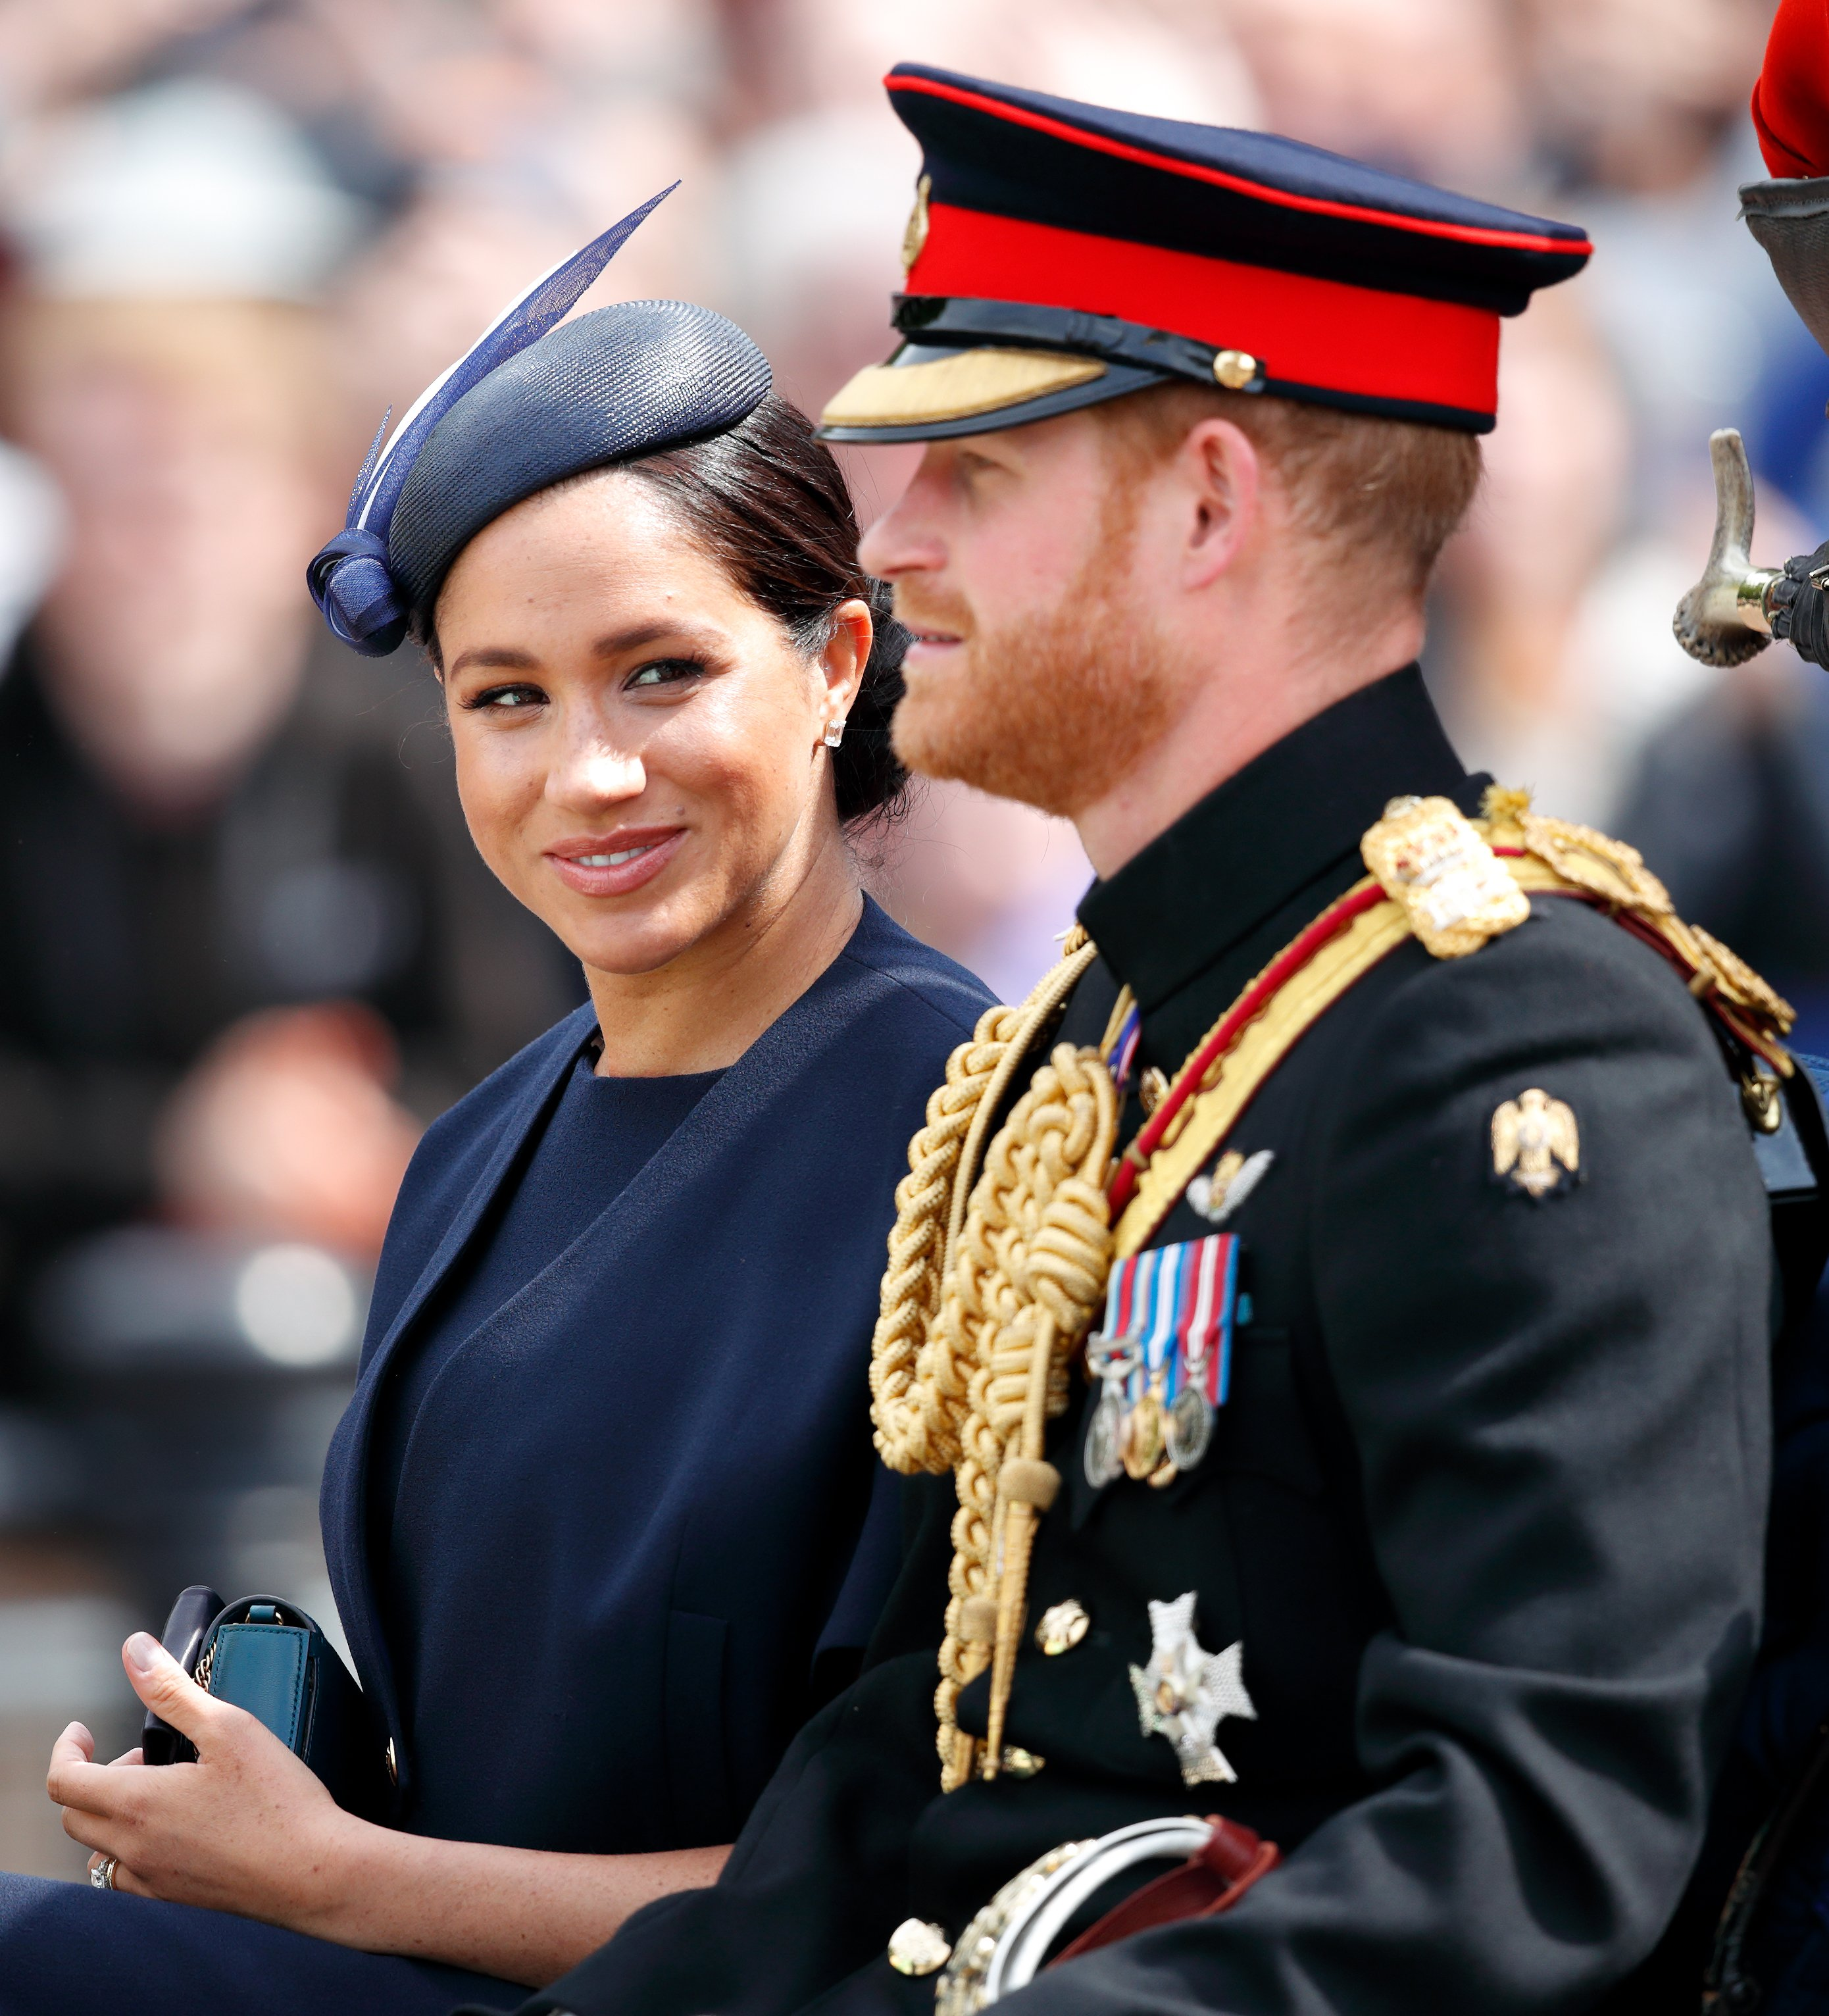 Duchess Meghan and Prince Harry at Trooping the Colour 2019 | Photo: Getty Images